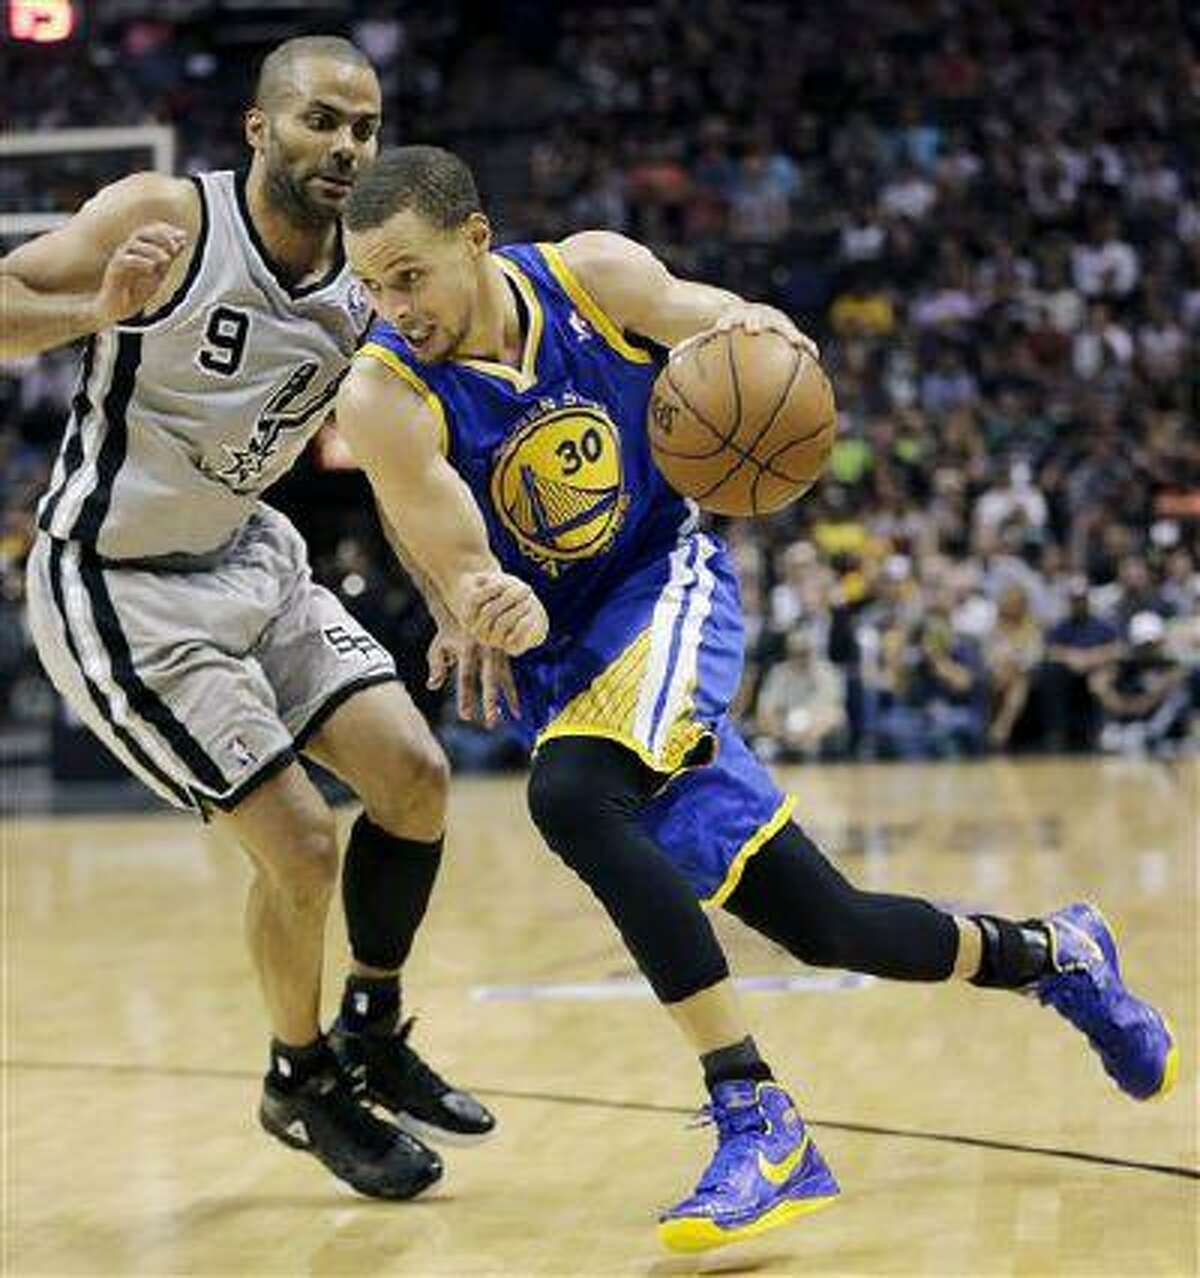 Golden State Warriors' Stephen Curry (30) drives on San Antonio Spurs' Tony Parker (9) during the second half in Game 5, May 14, 2013, in San Antonio.